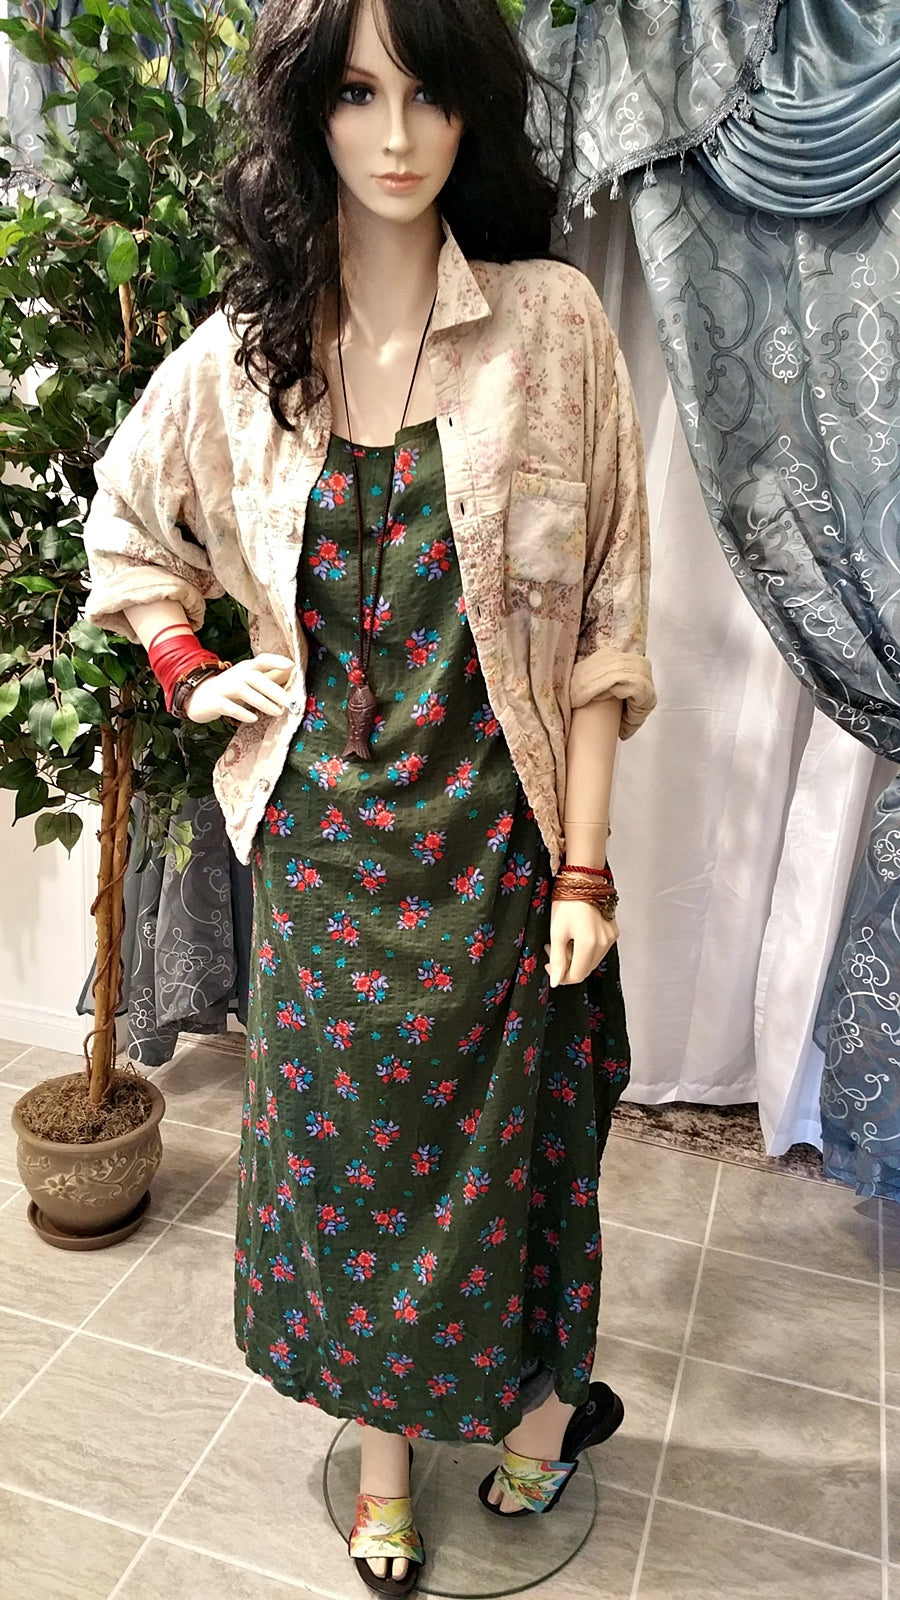 Dress Vintage Floral Half Sleeve Green Cotton Maxi Boho Dress - One Size